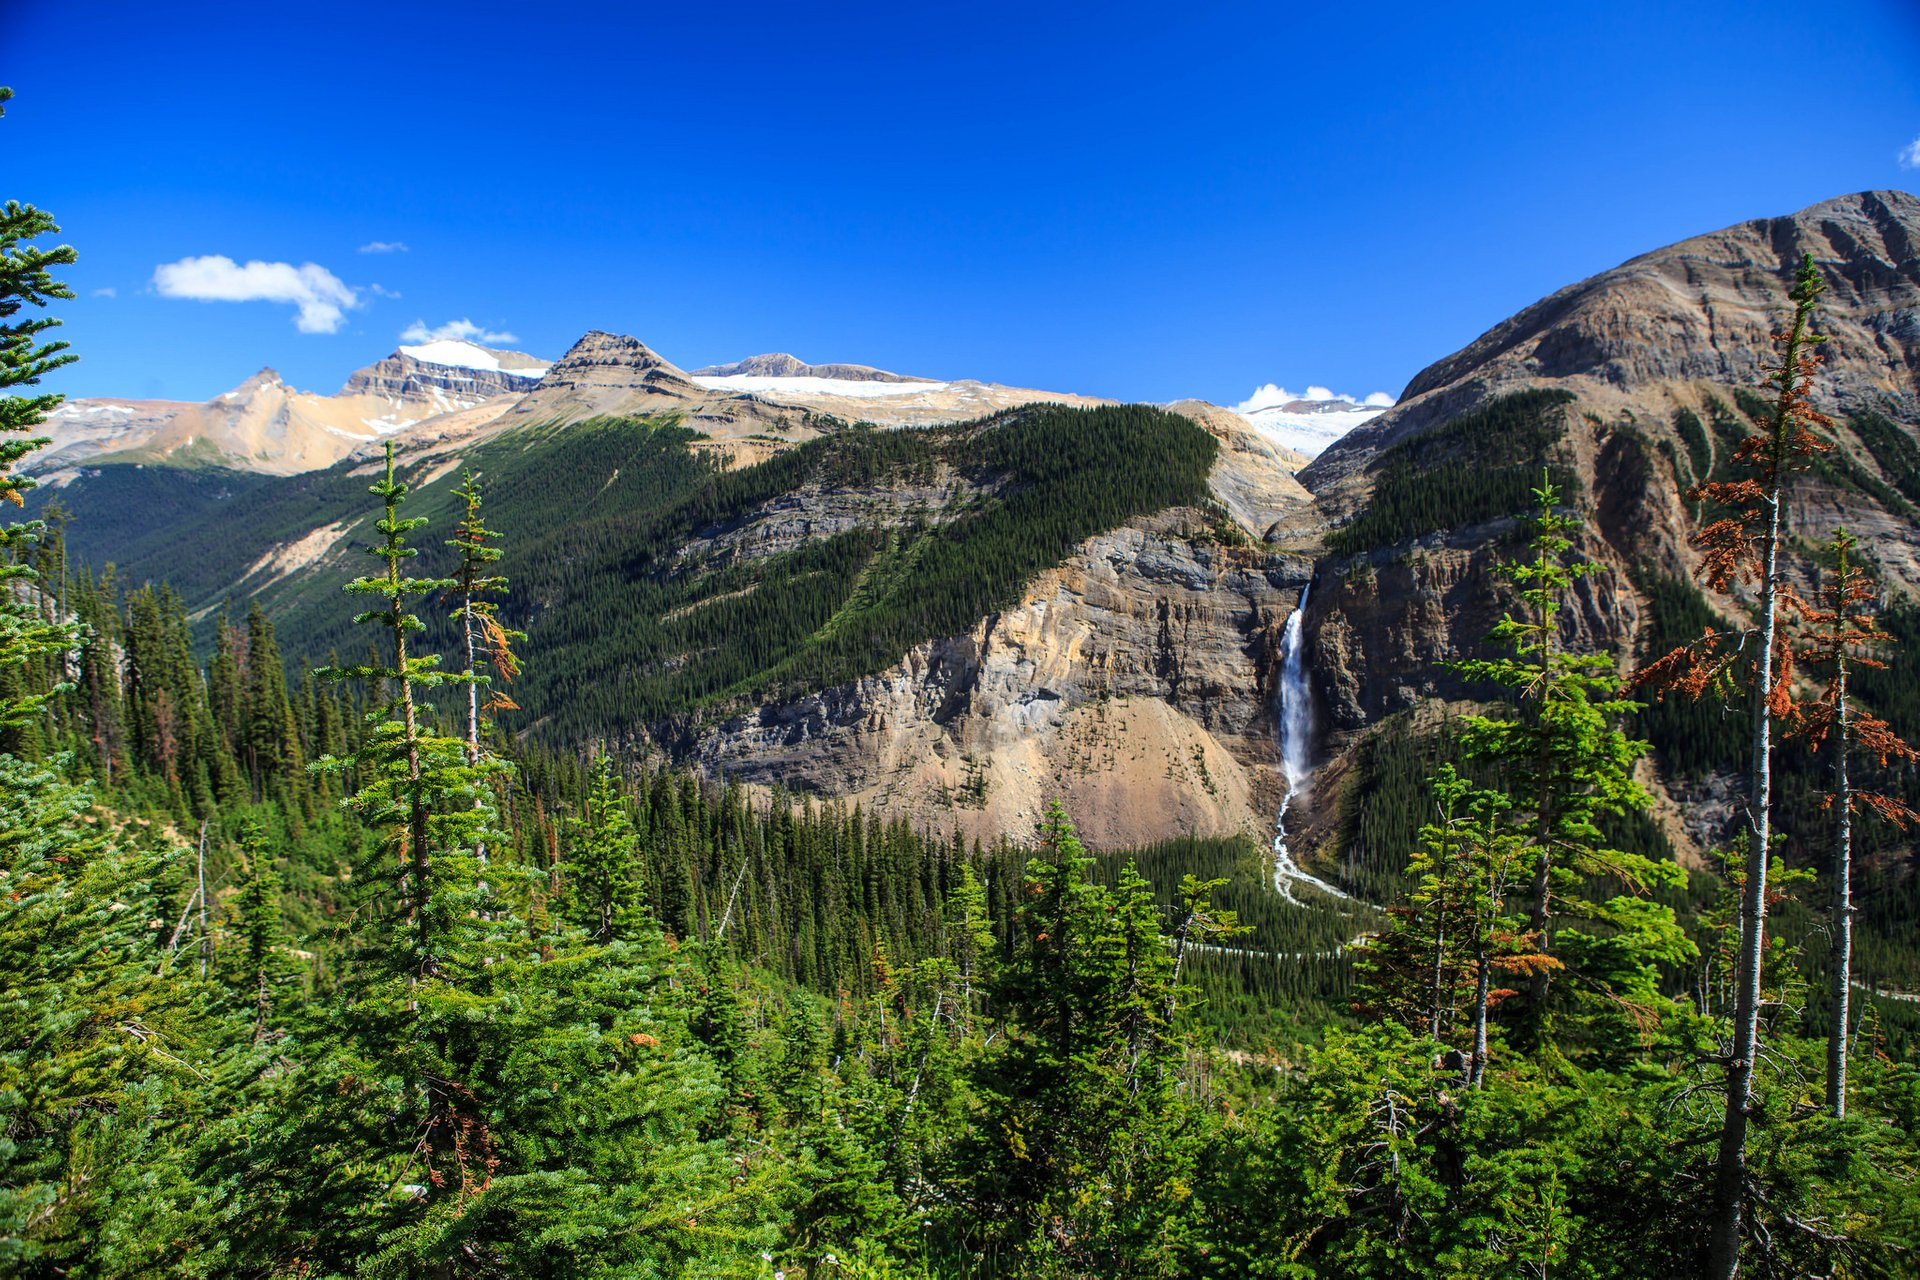 Takakkaw Falls from the Iceline Trail 2020